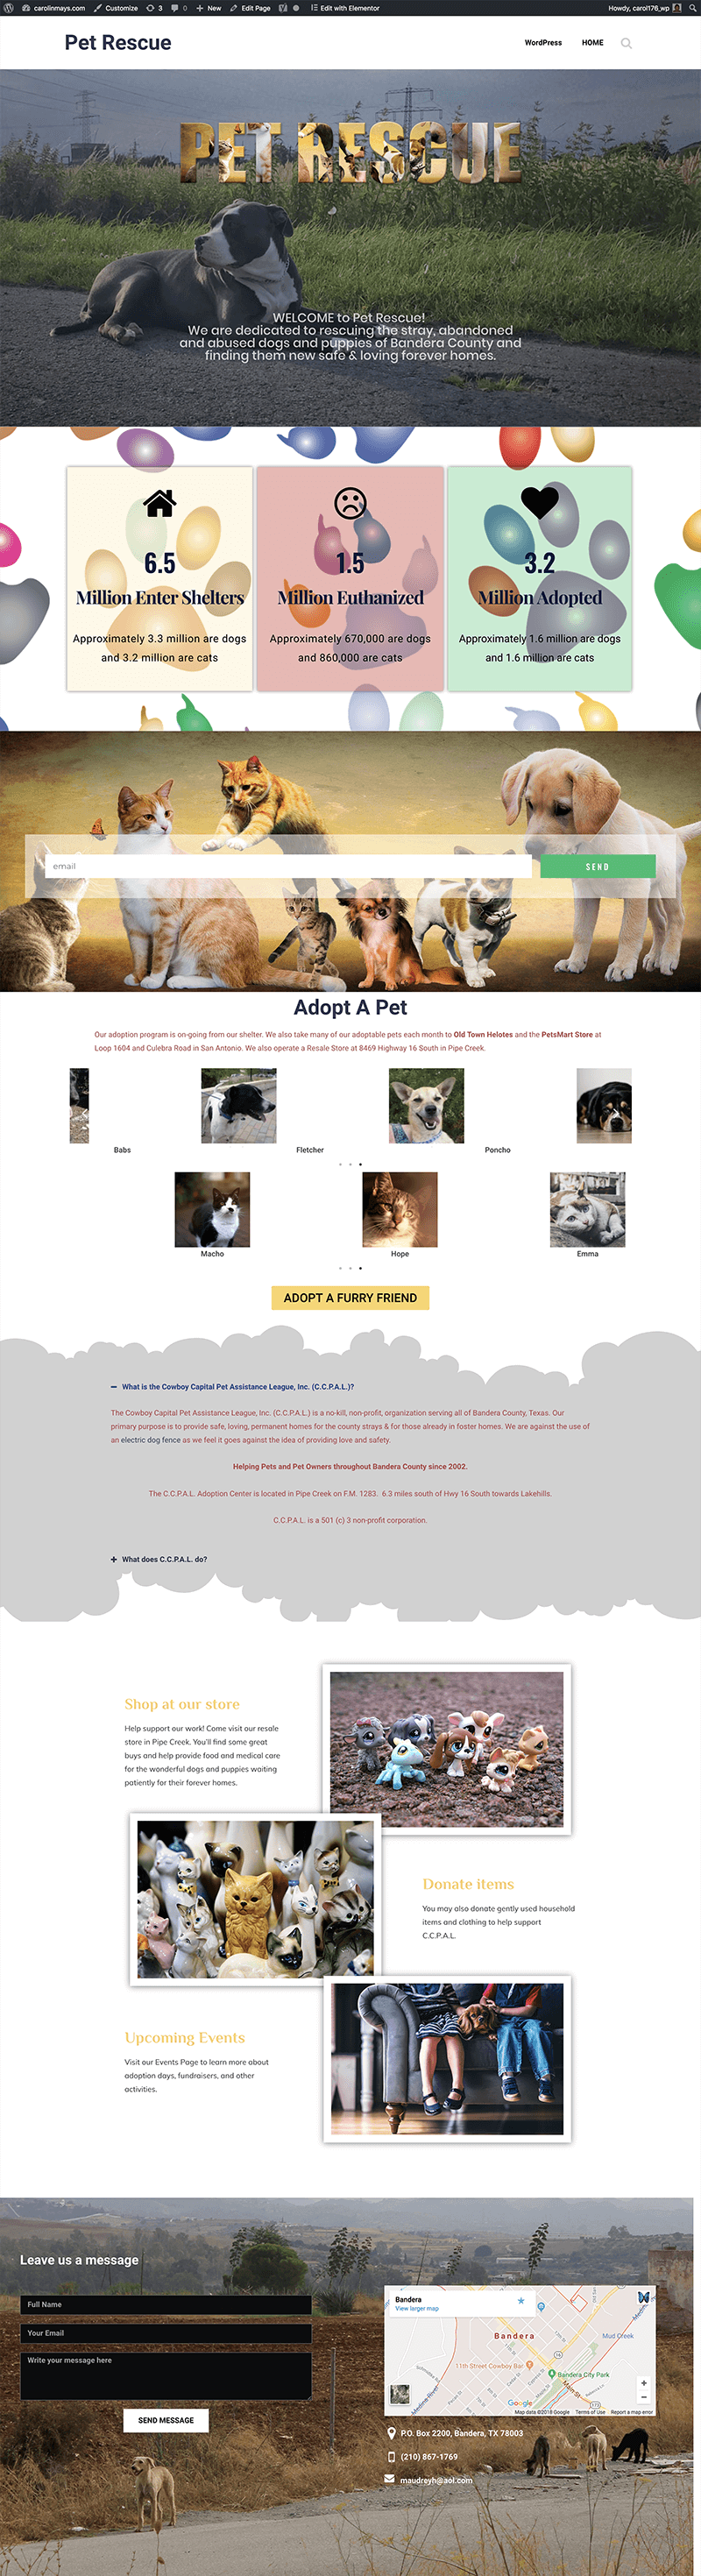 pet rescue site home page mockup